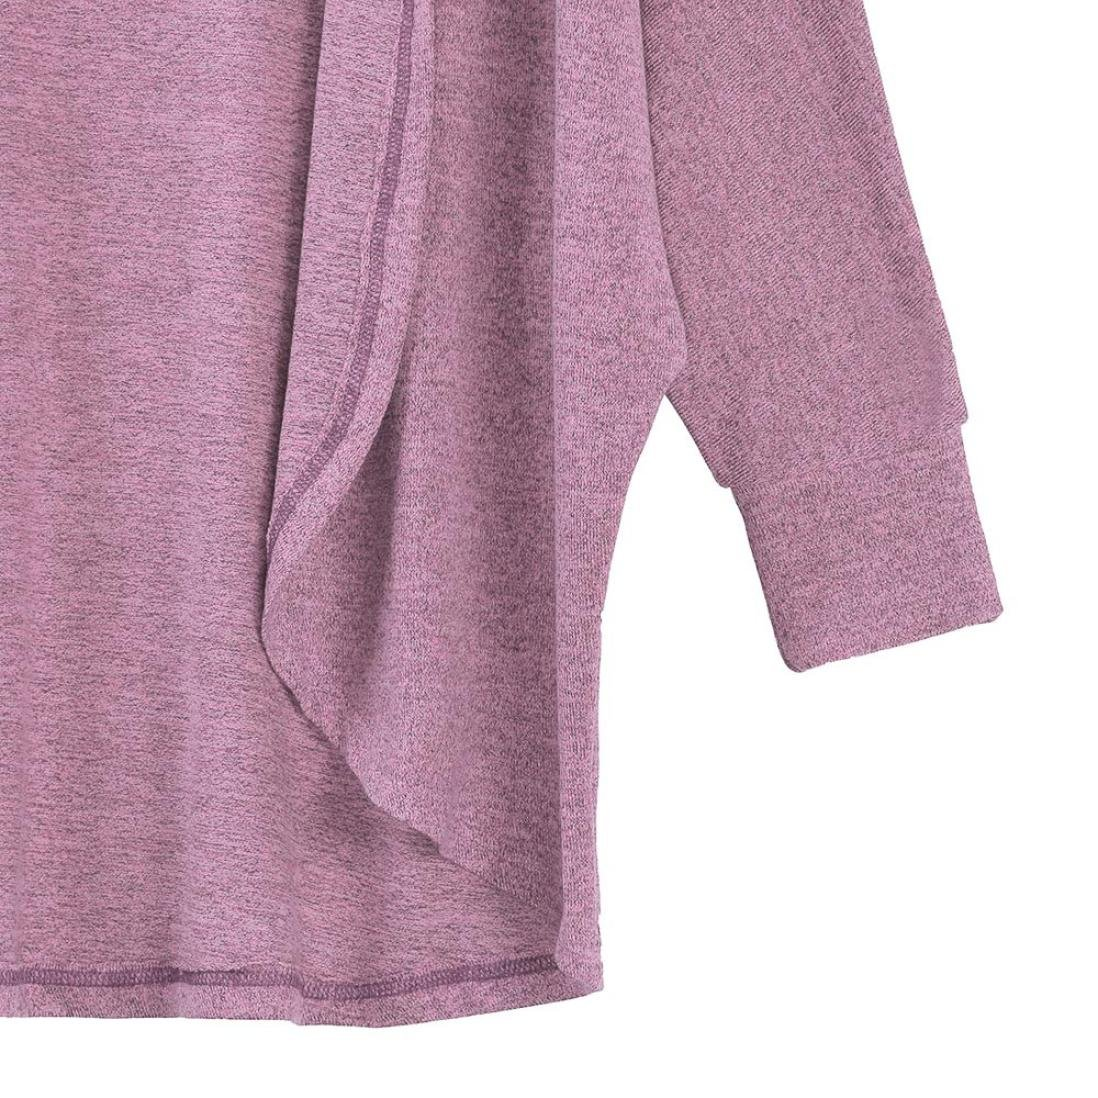 Hot Sale!Women's Cardigans Neartime Womens Kintted Cardigan Asymmetric Sweater Hem Long Sleeve Coat Tops (L, Pink) by NEARTIME (Image #6)